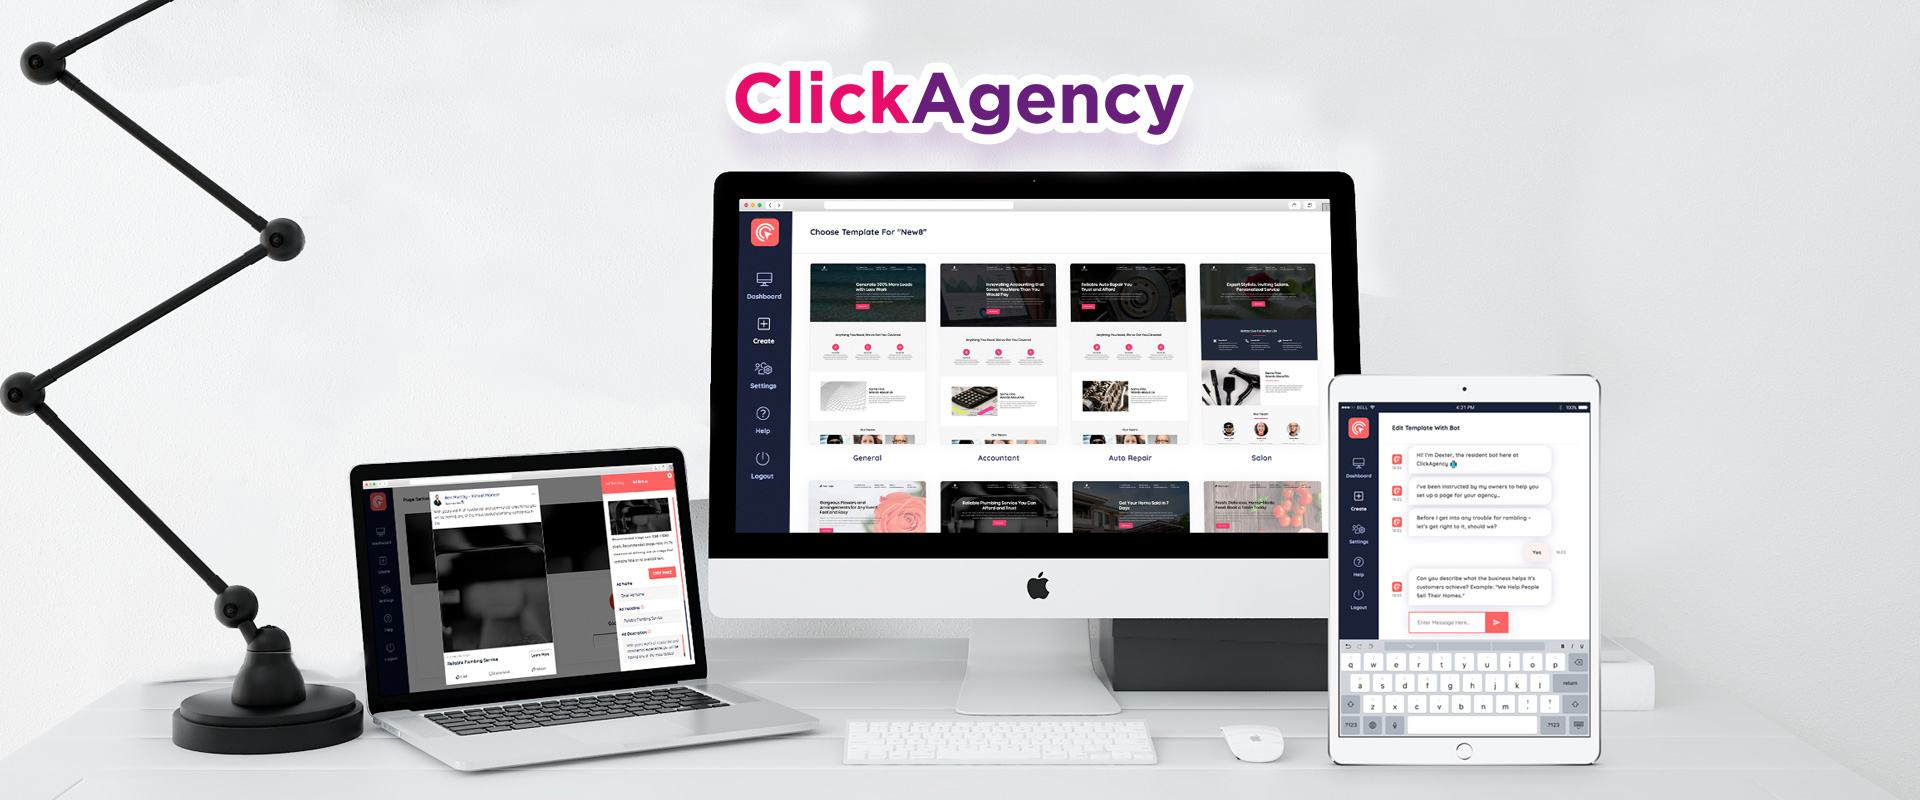 ClickAgency Review